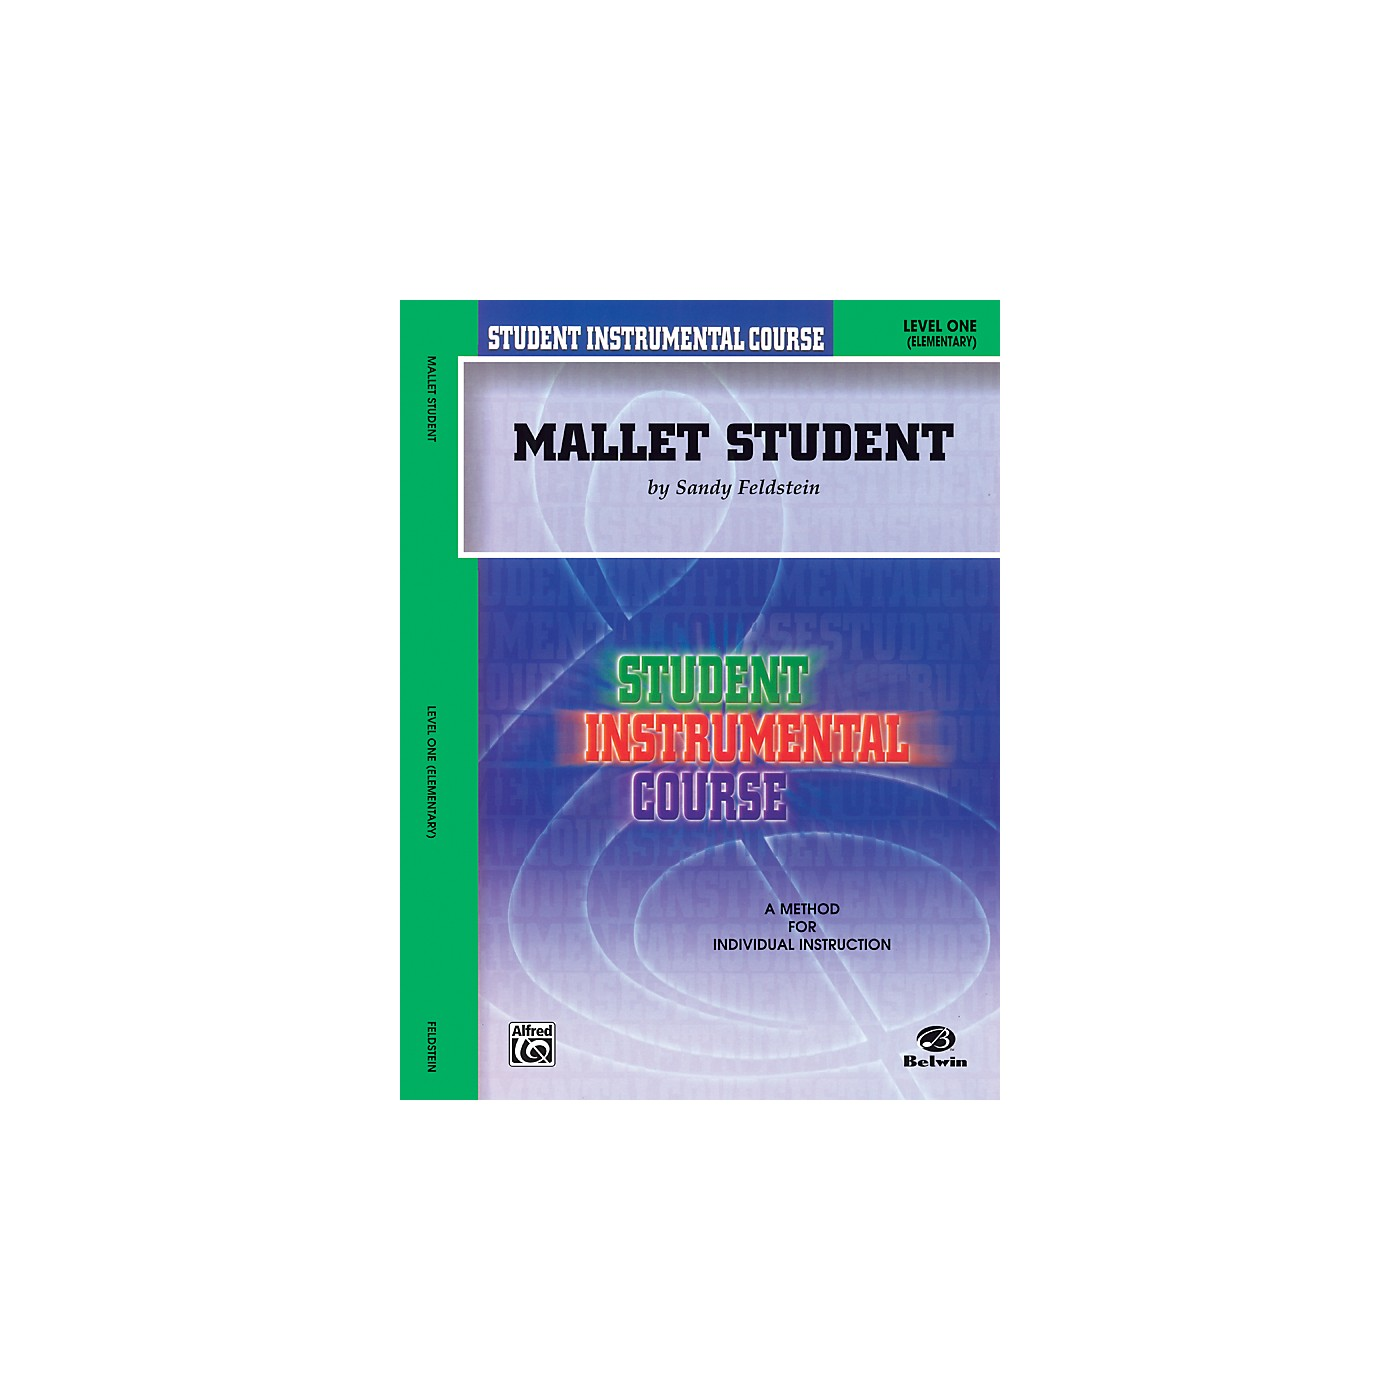 Alfred Student Instrumental Course Mallet Student Level 1 Book thumbnail